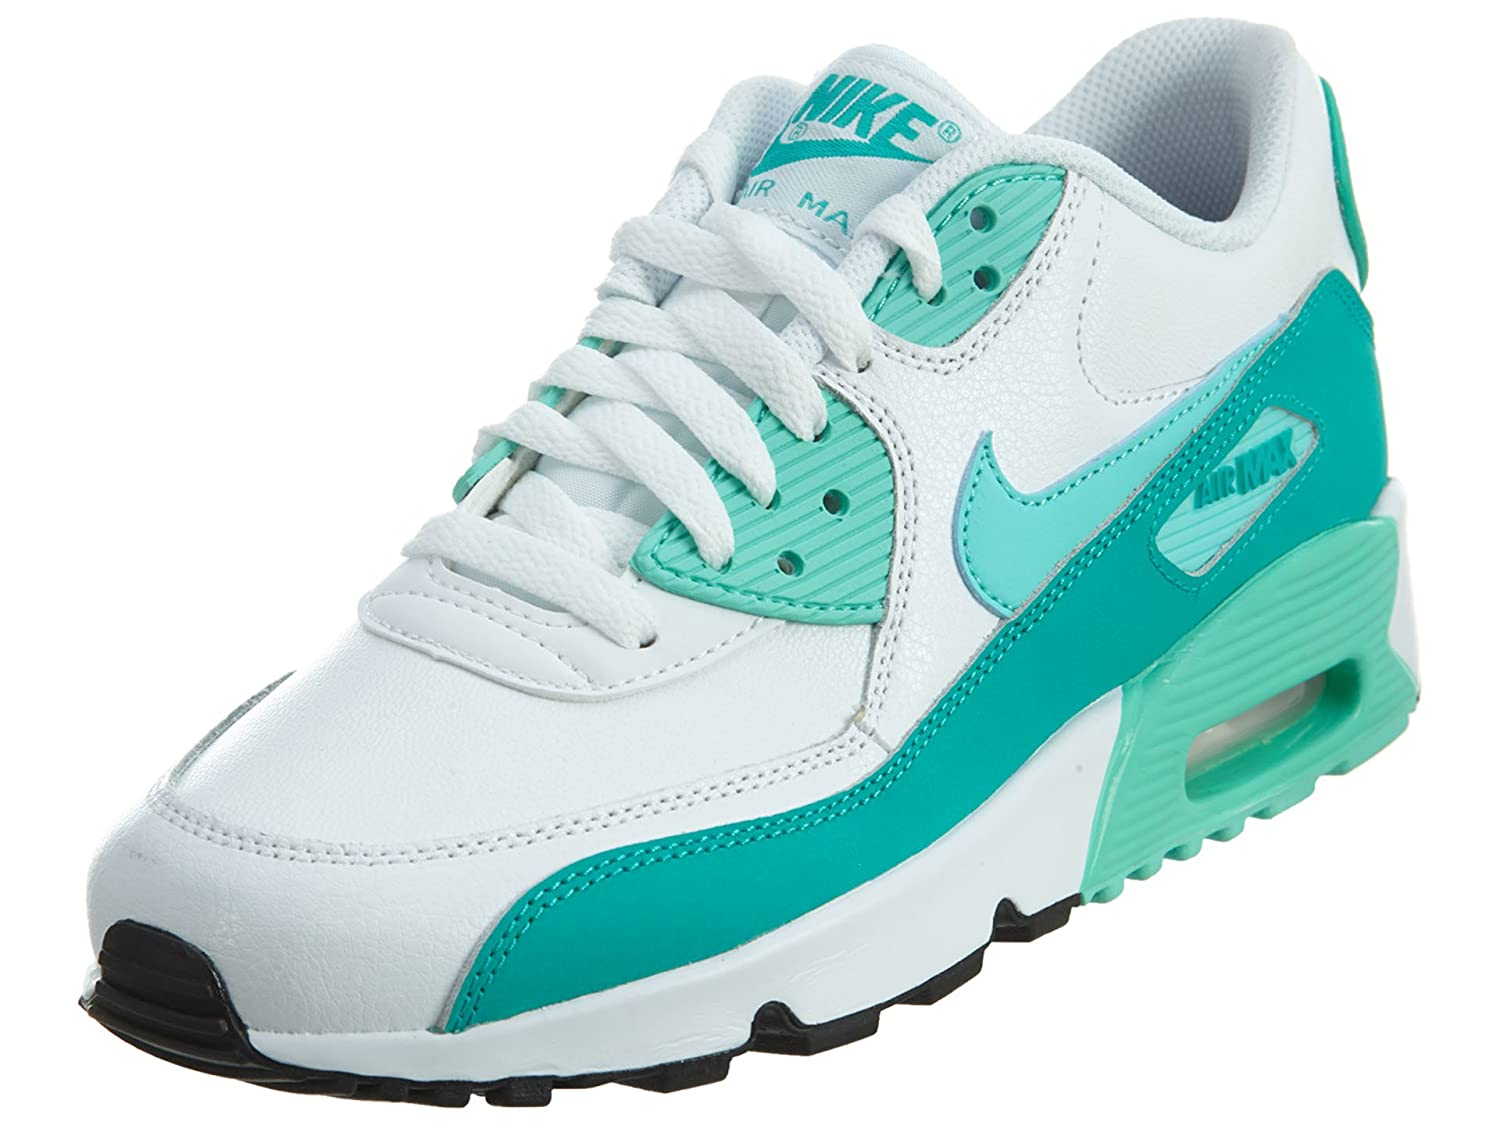 f7e88814ab Amazon.com | Nike Air Max 90 LTR White/Hyper Turquoise-Clear Jade-Black  (GS) | Running